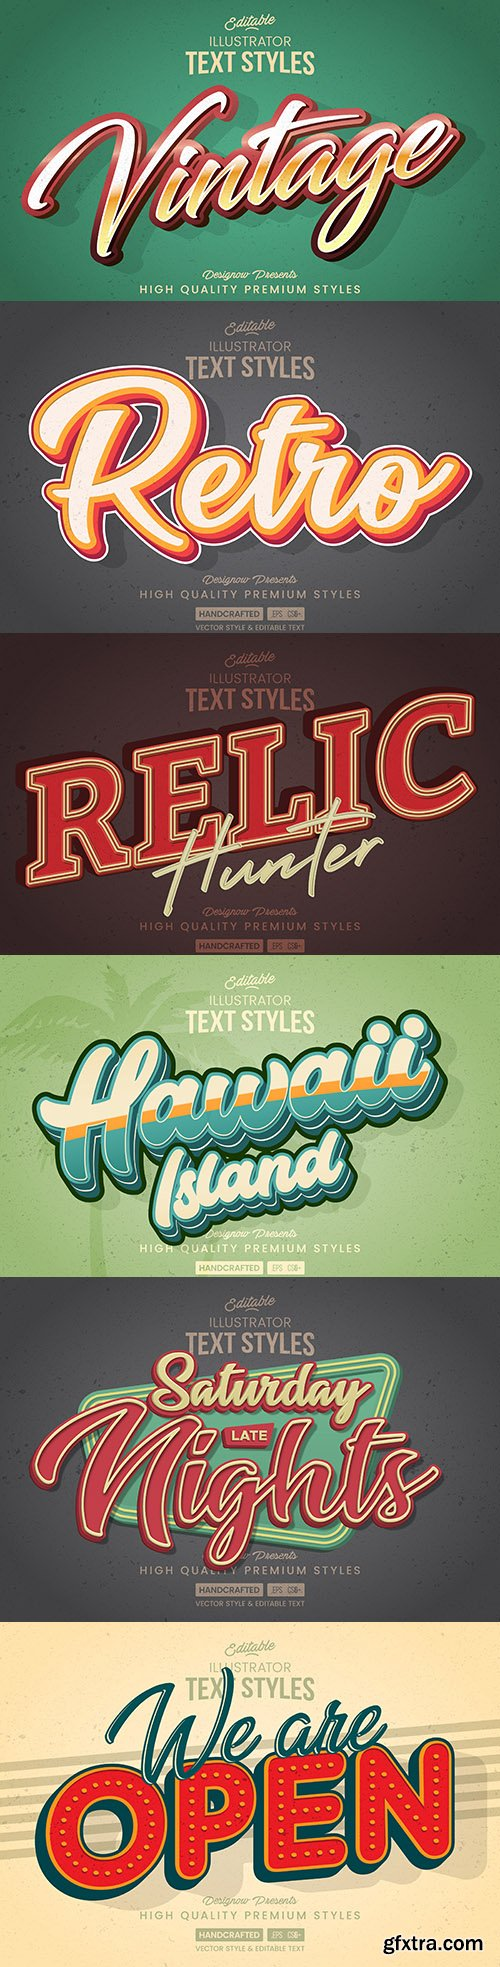 Editable retro font effect text collection illustration design